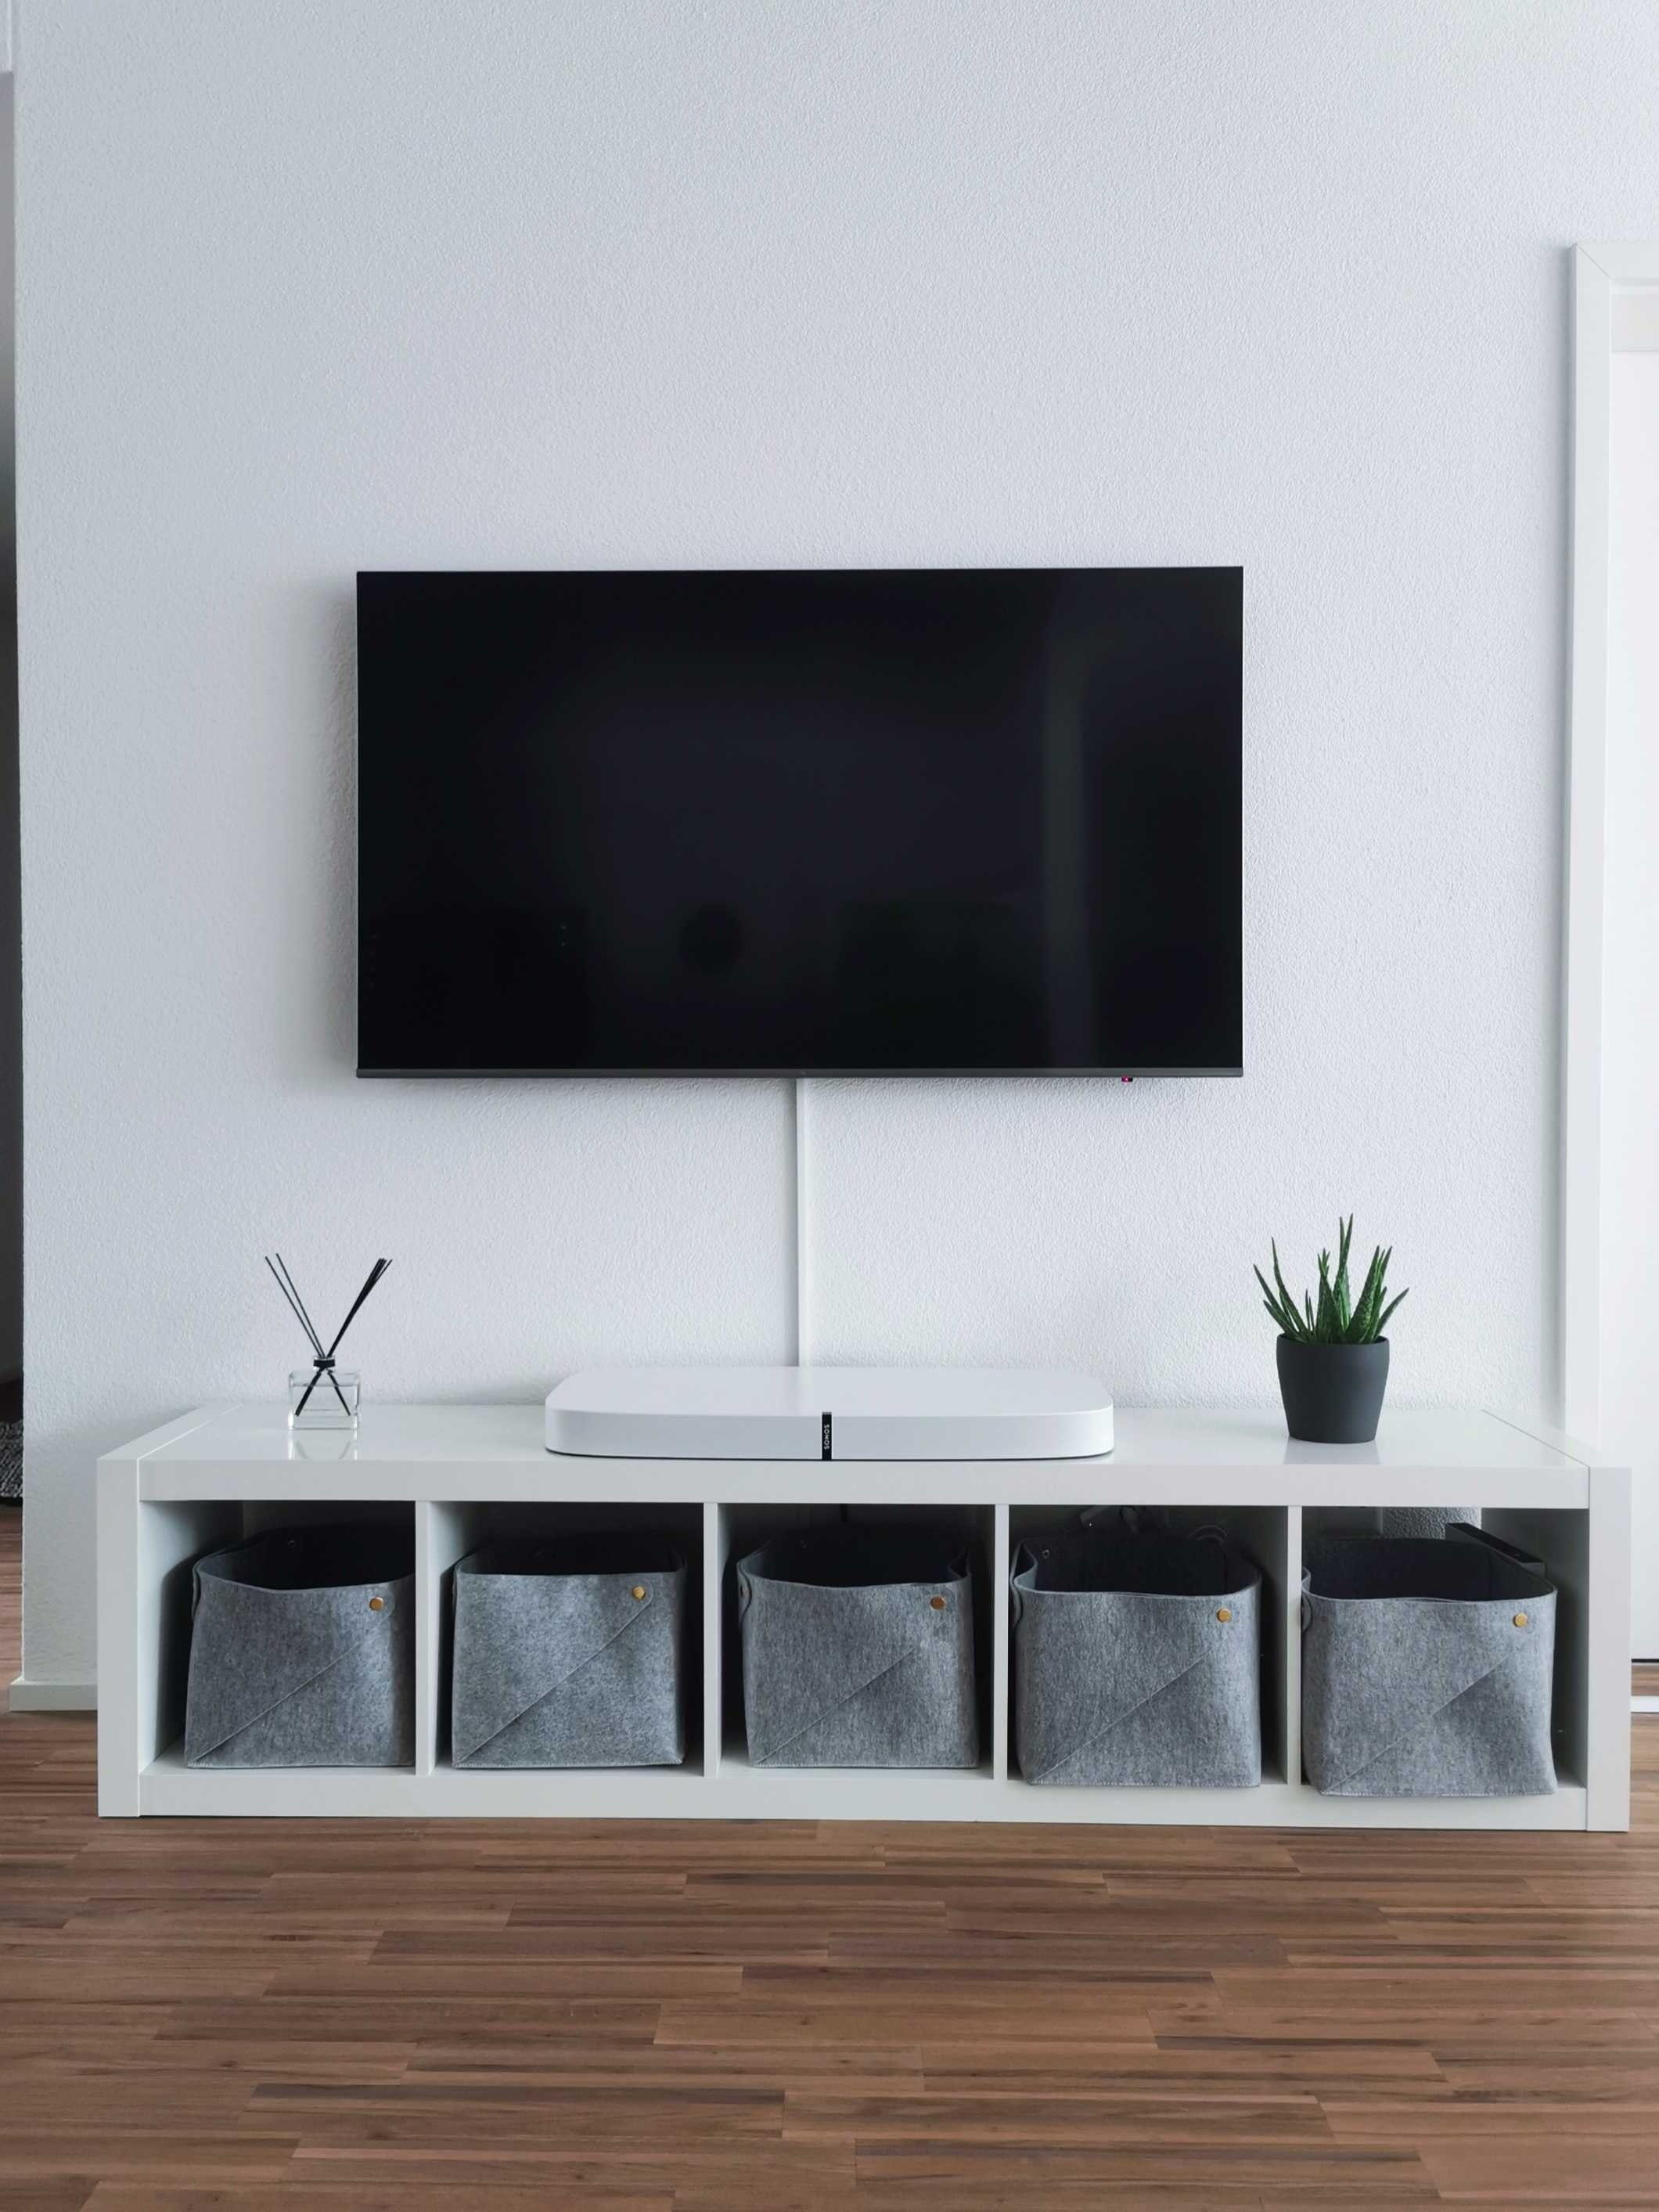 Store and display your favorite things with a TV mount vs stand.